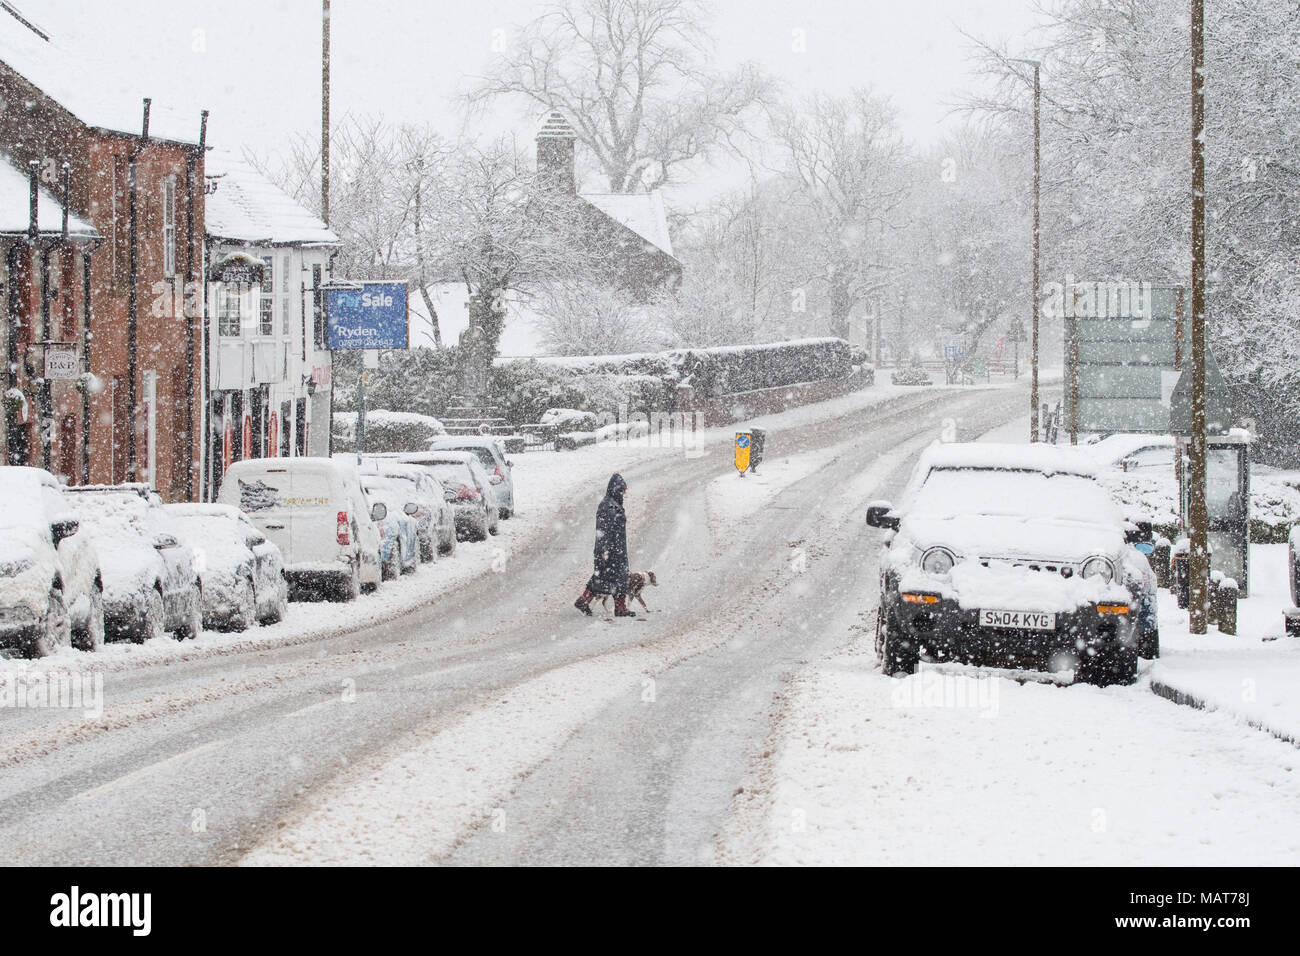 Buchlyvie, Stirling, Scotland, UK - 4 April 2018: UK weather -  heavy snow in the village of Buchlyvie on the A811 road to Stirling in Scotland's central belt Credit: Kay Roxby/Alamy Live News - Stock Image